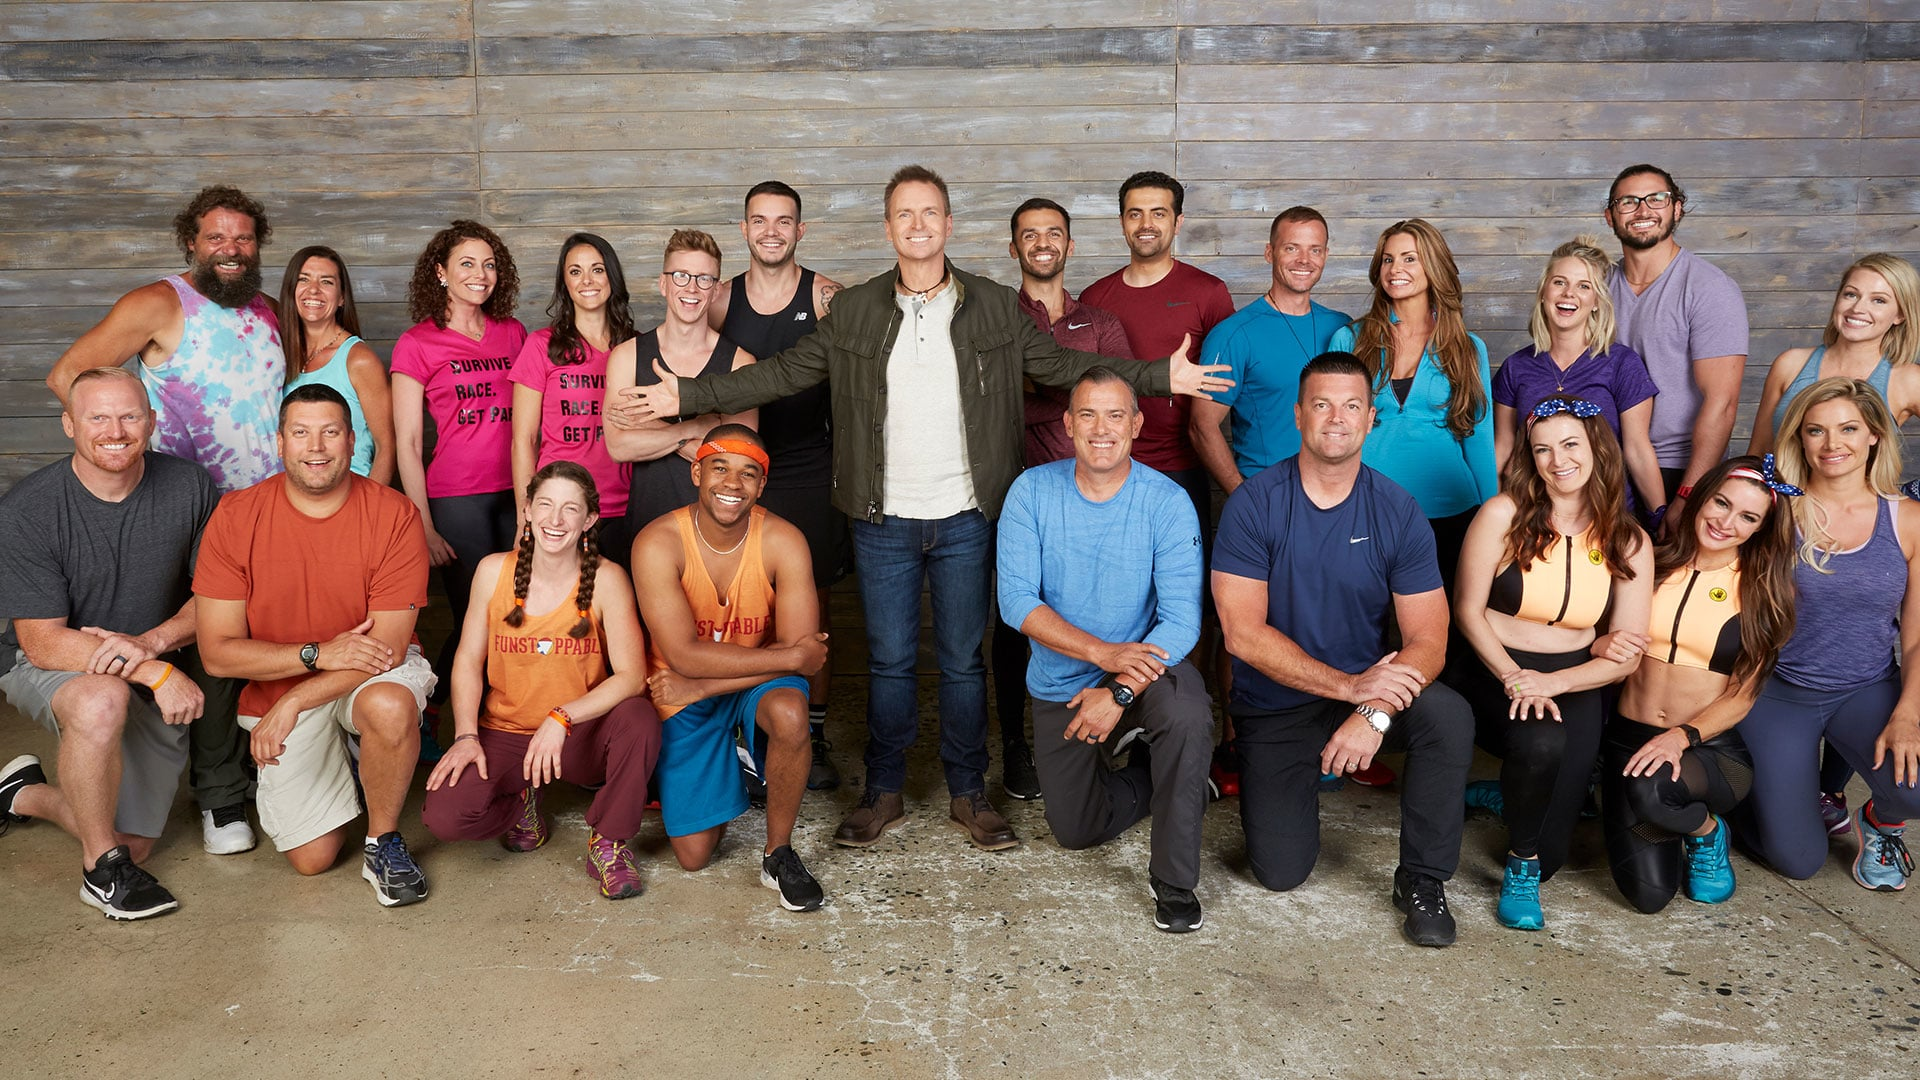 The Amazing Race Season 32 Episode 1